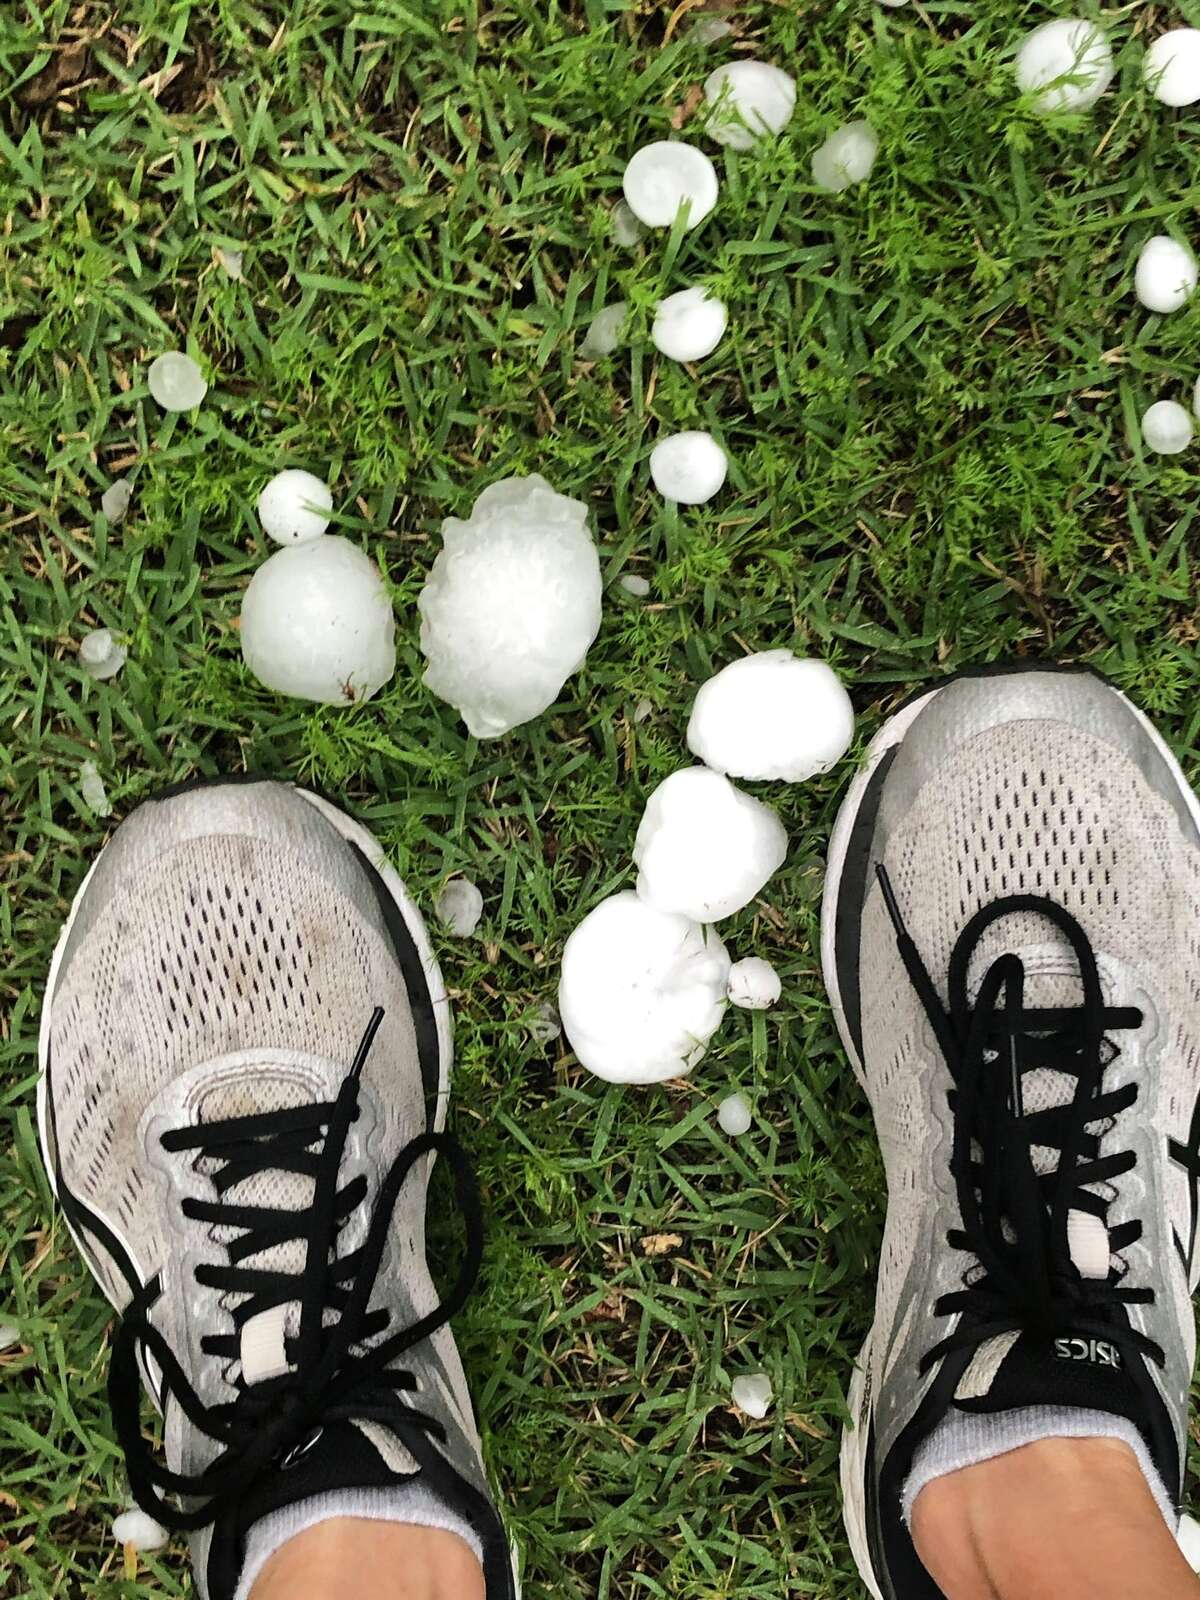 San Antonio residents woke up to hail Saturday morning as a storm system pushed through South-Central Texas.